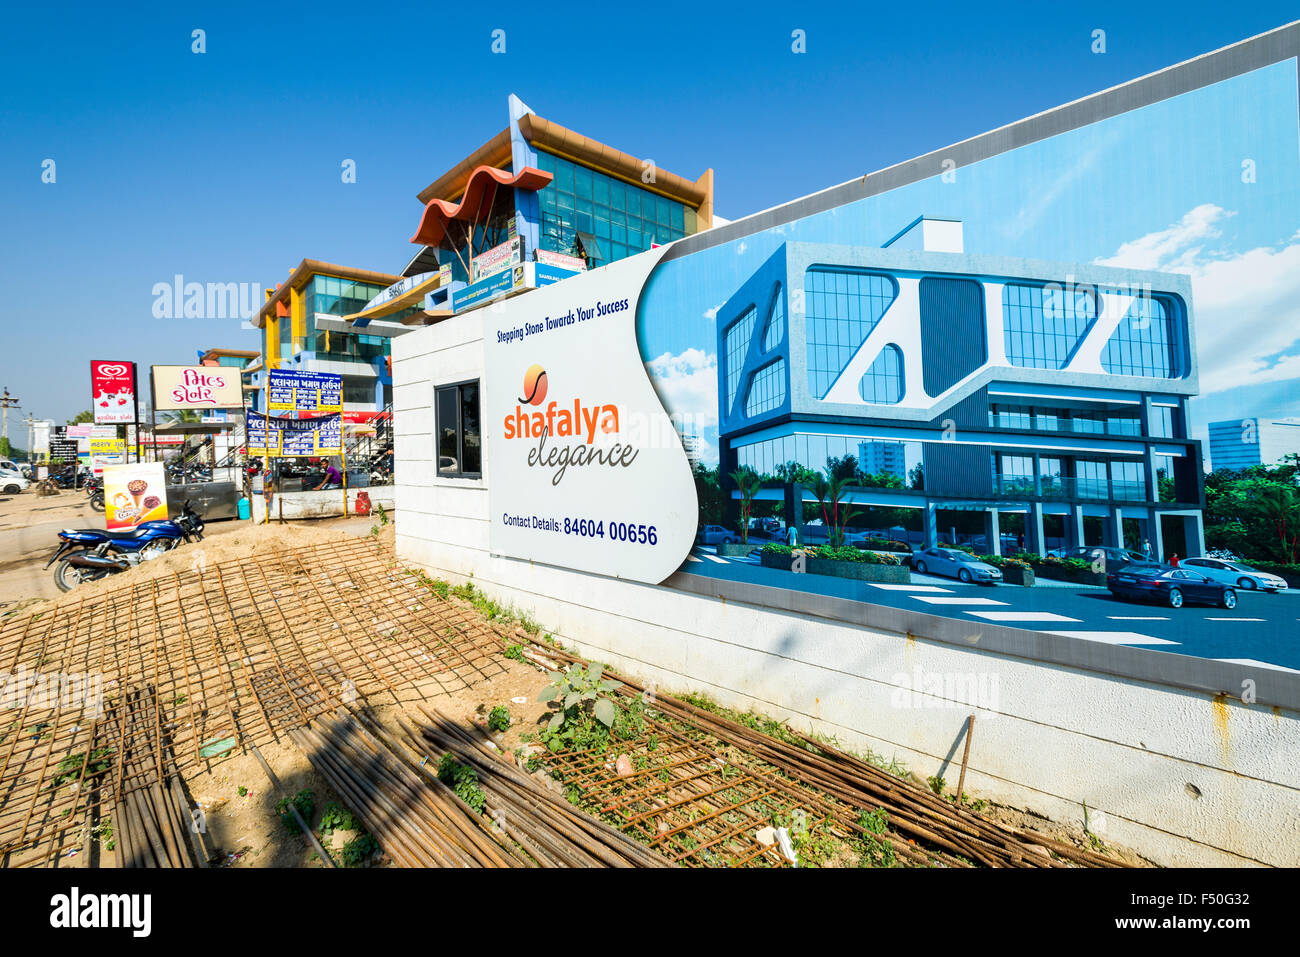 A big advertisement for a new office building with some new modern buildings in the distance - Stock Image